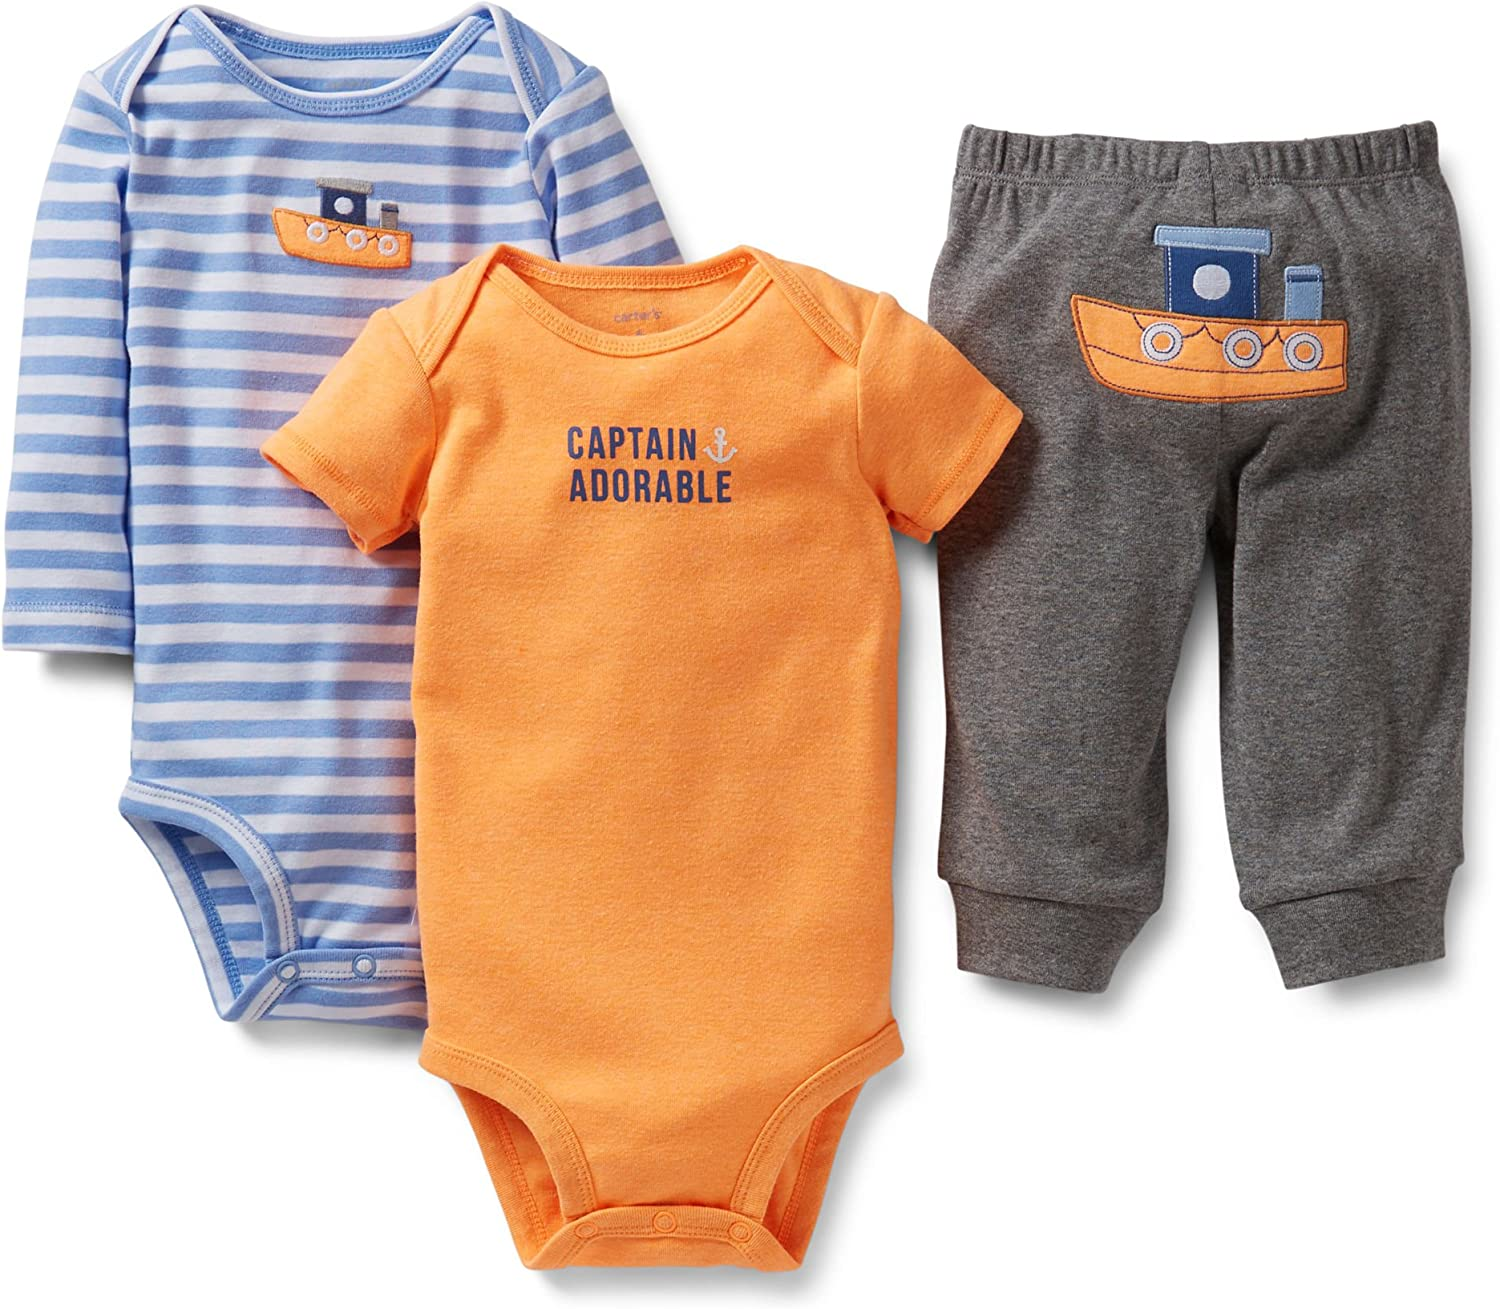 Carter's 'Captain Adorable' 3pc Bodysuit All stores are sold Set Sales for sale Pant